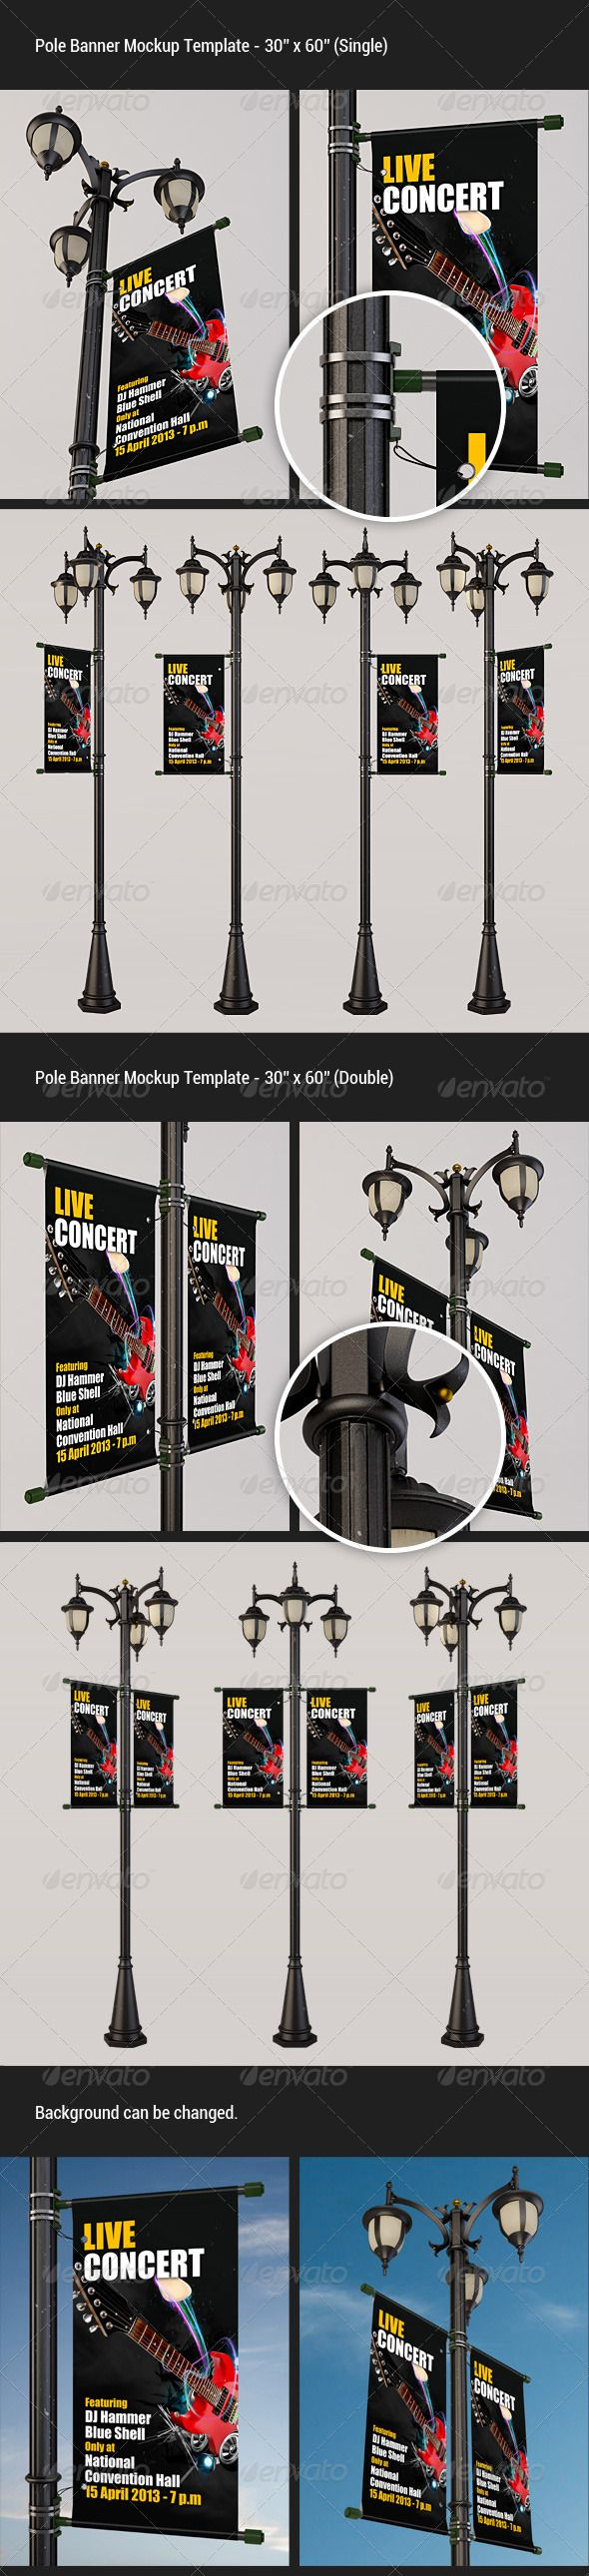 Banner banners banner poles outdoor display cheap custom - Pole Banner Mock Up Pole Bannersoutdoor